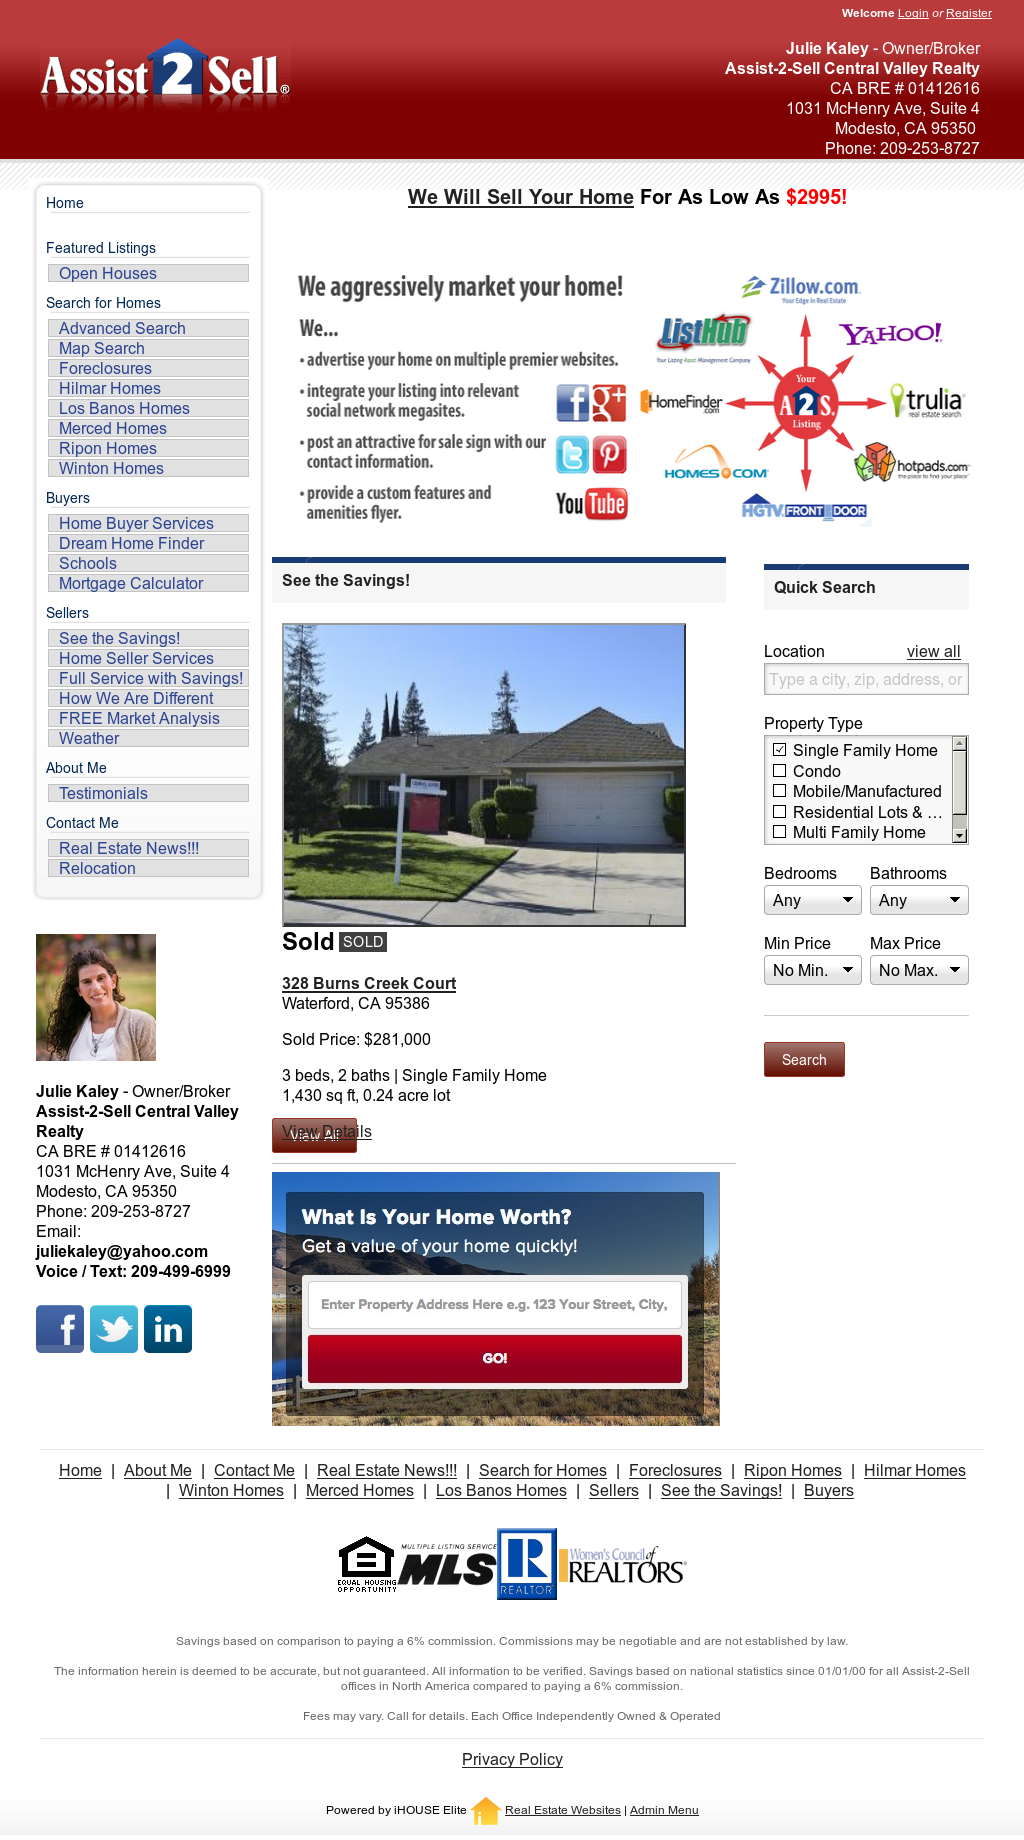 Assist 2 Sell Central Valley Realty Competitors, Revenue and